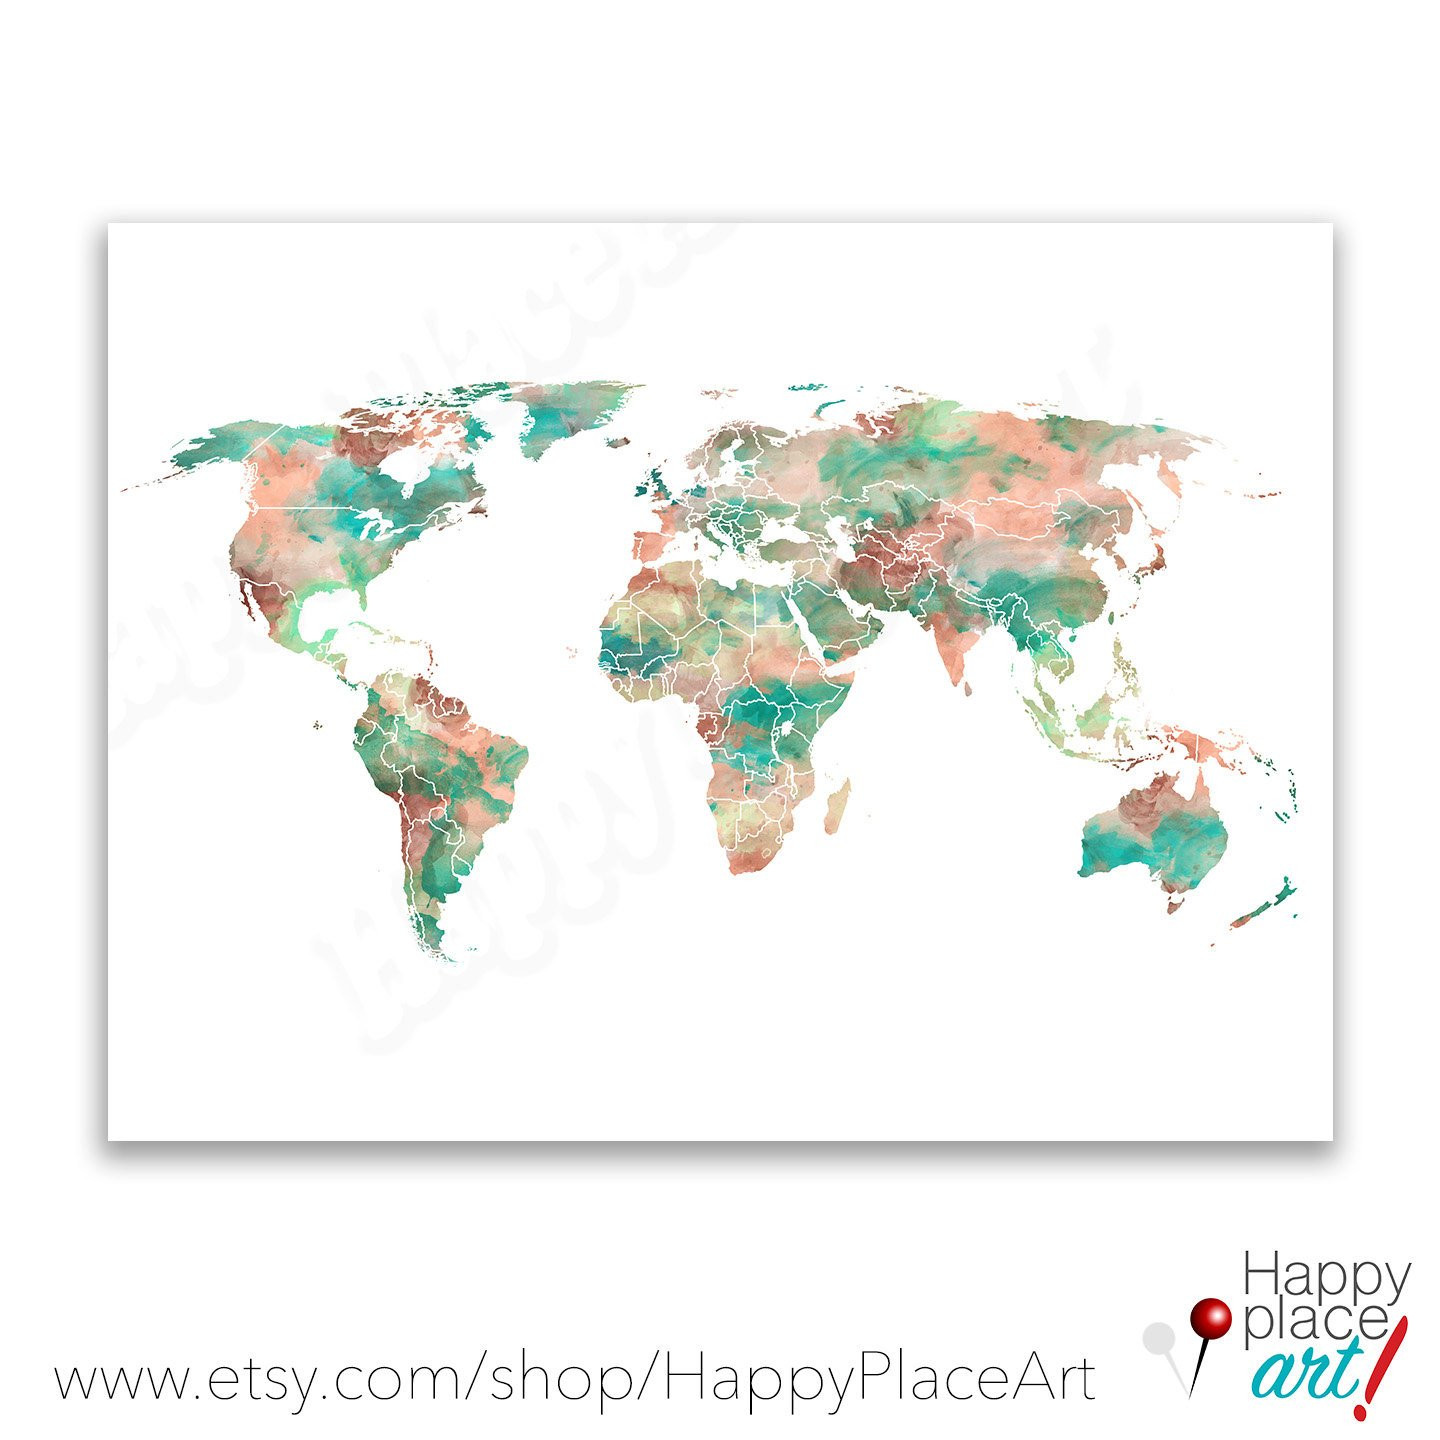 Printable World Map 8x10 Awesome Mint Green Lime And Peach World Map Print 8x10 11x14 Or